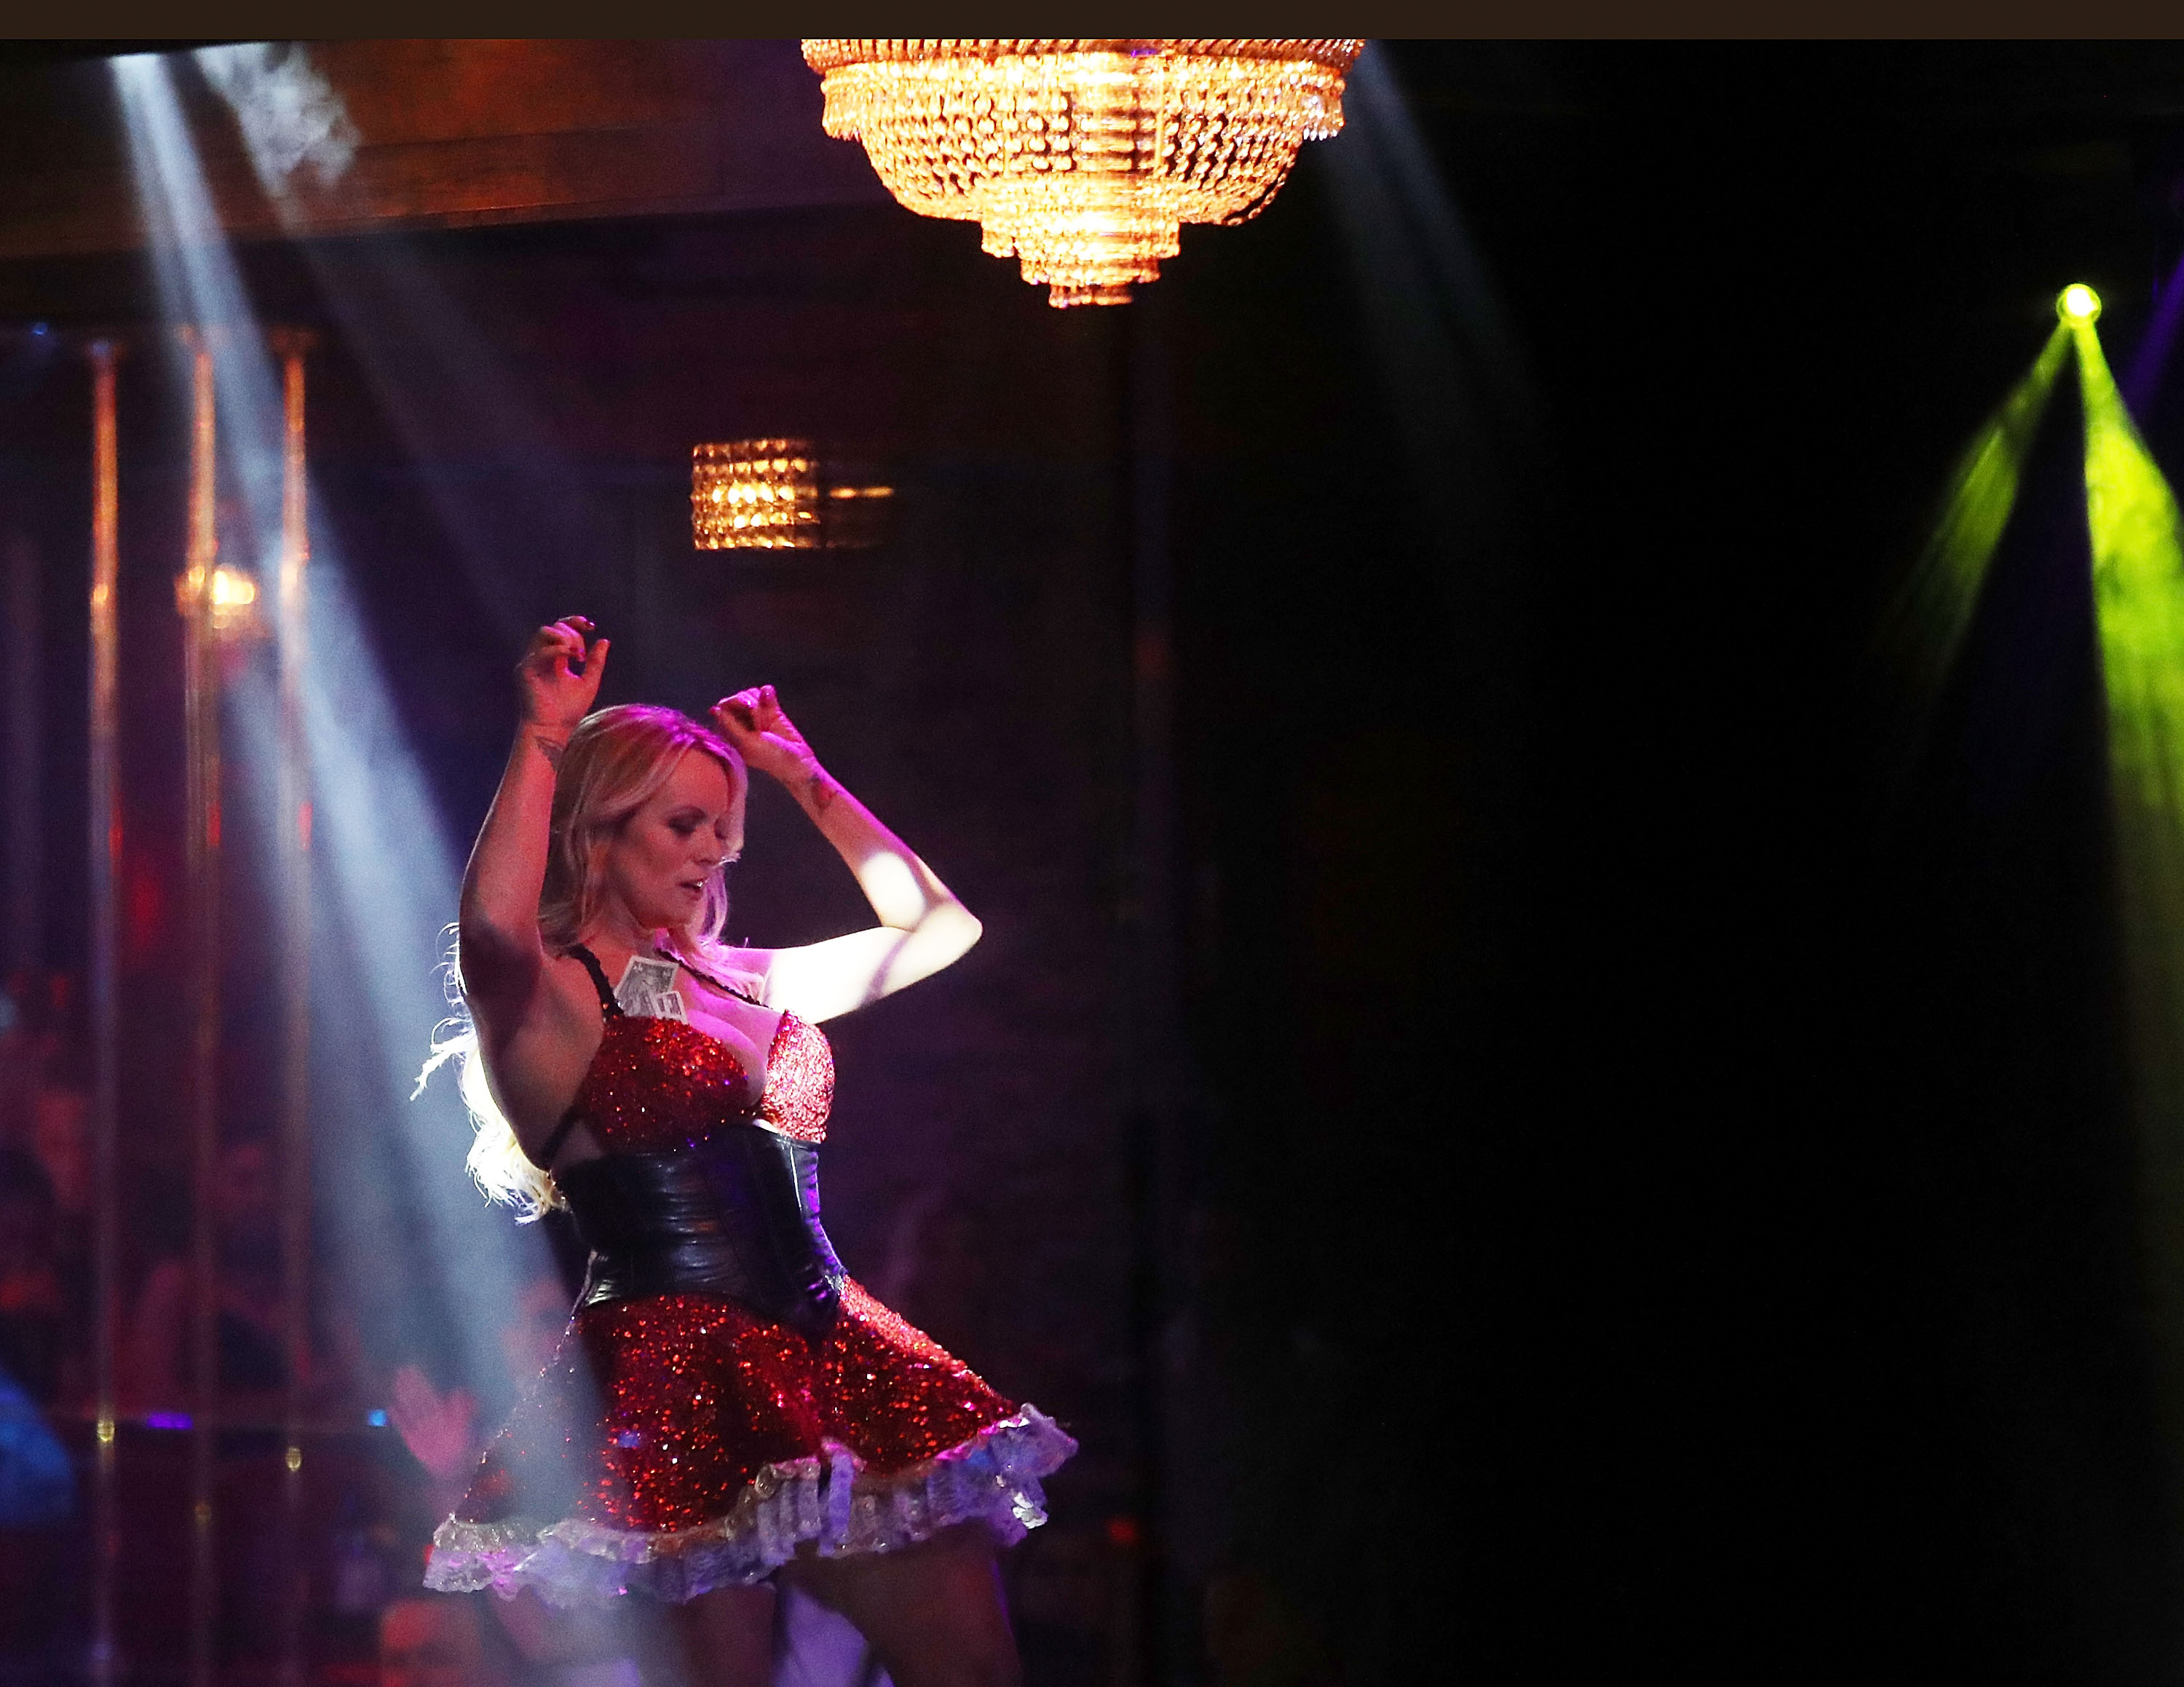 Pornographic Film Star Stormy Daniels, Who Alleges Affair With President Trump, Appears At Florida Strip Club